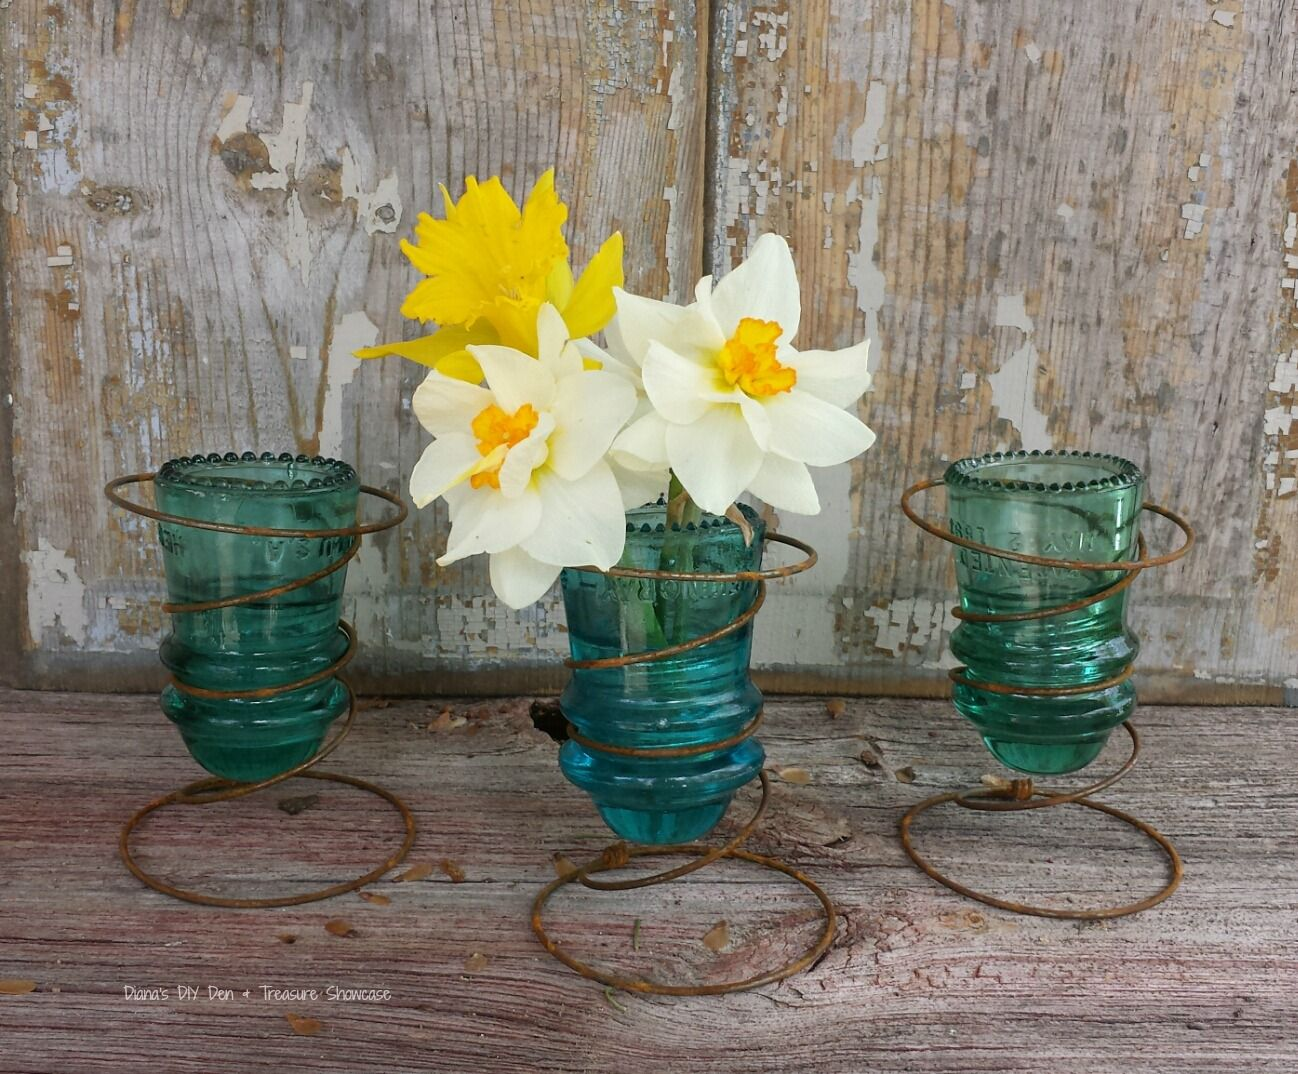 Communication on this topic: How to Create a Vintage Bedspring Vase, how-to-create-a-vintage-bedspring-vase/